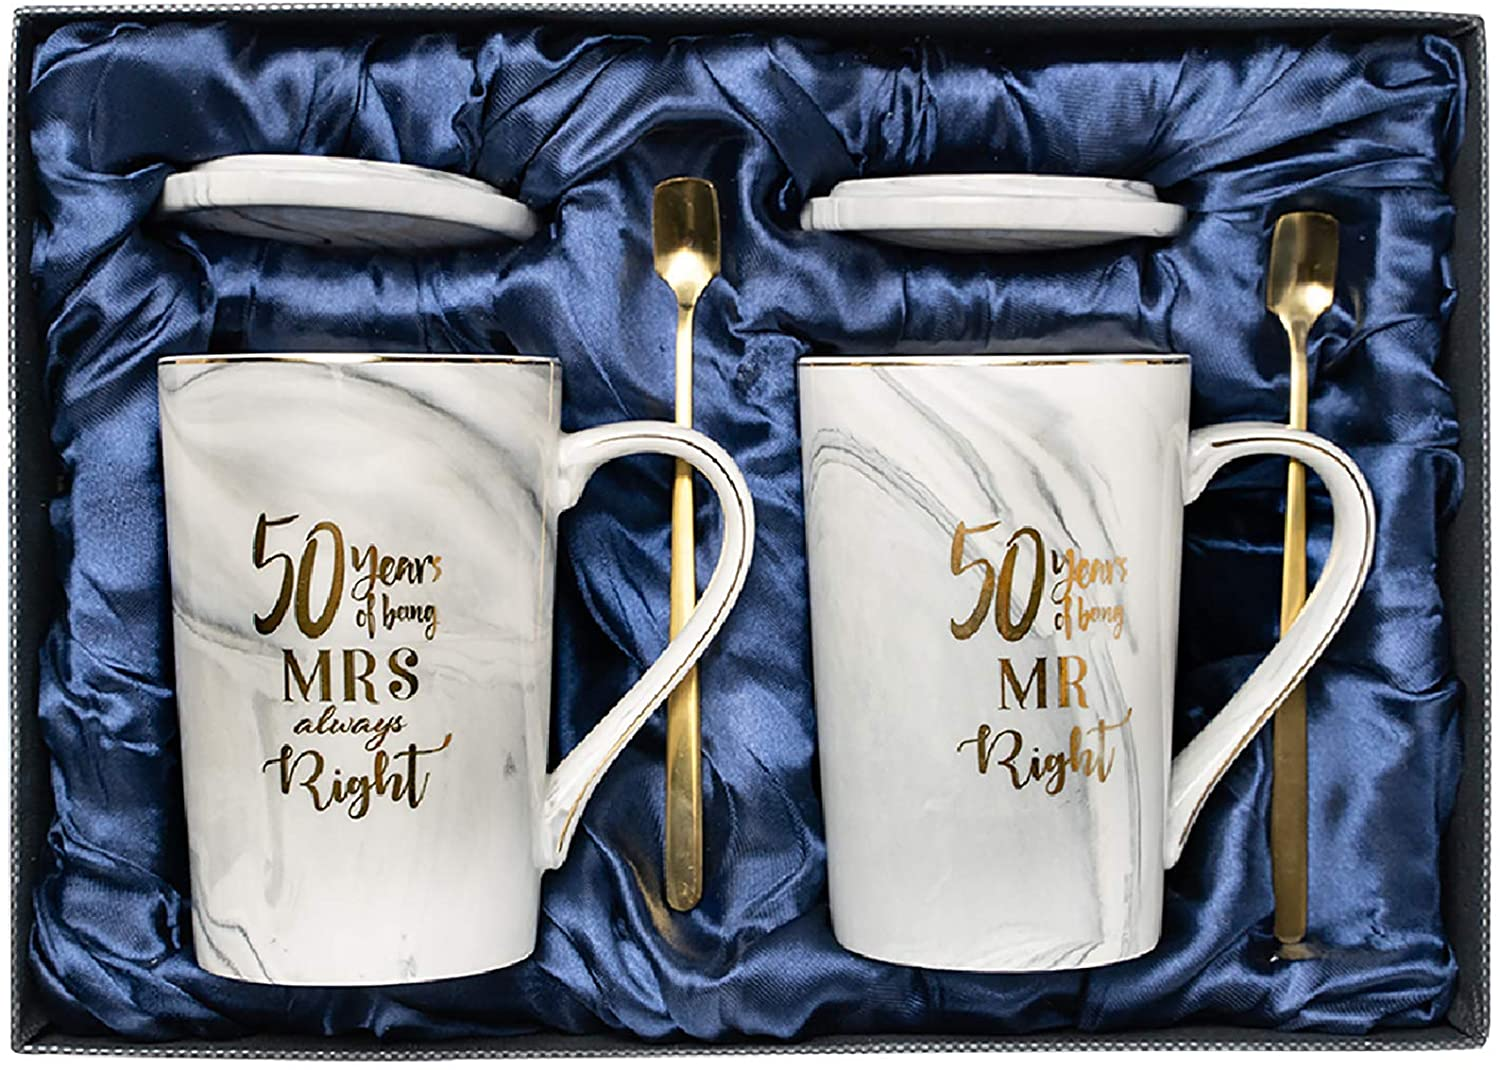 Amazon Com 50th Anniversary Gifts For Couple 50th Wedding Anniversary Gifts Golden Anniversary Gifts For Couples Gifts For Grandparents Gifts For 50th Anniversary Grandpa Grandma Kitchen Dining